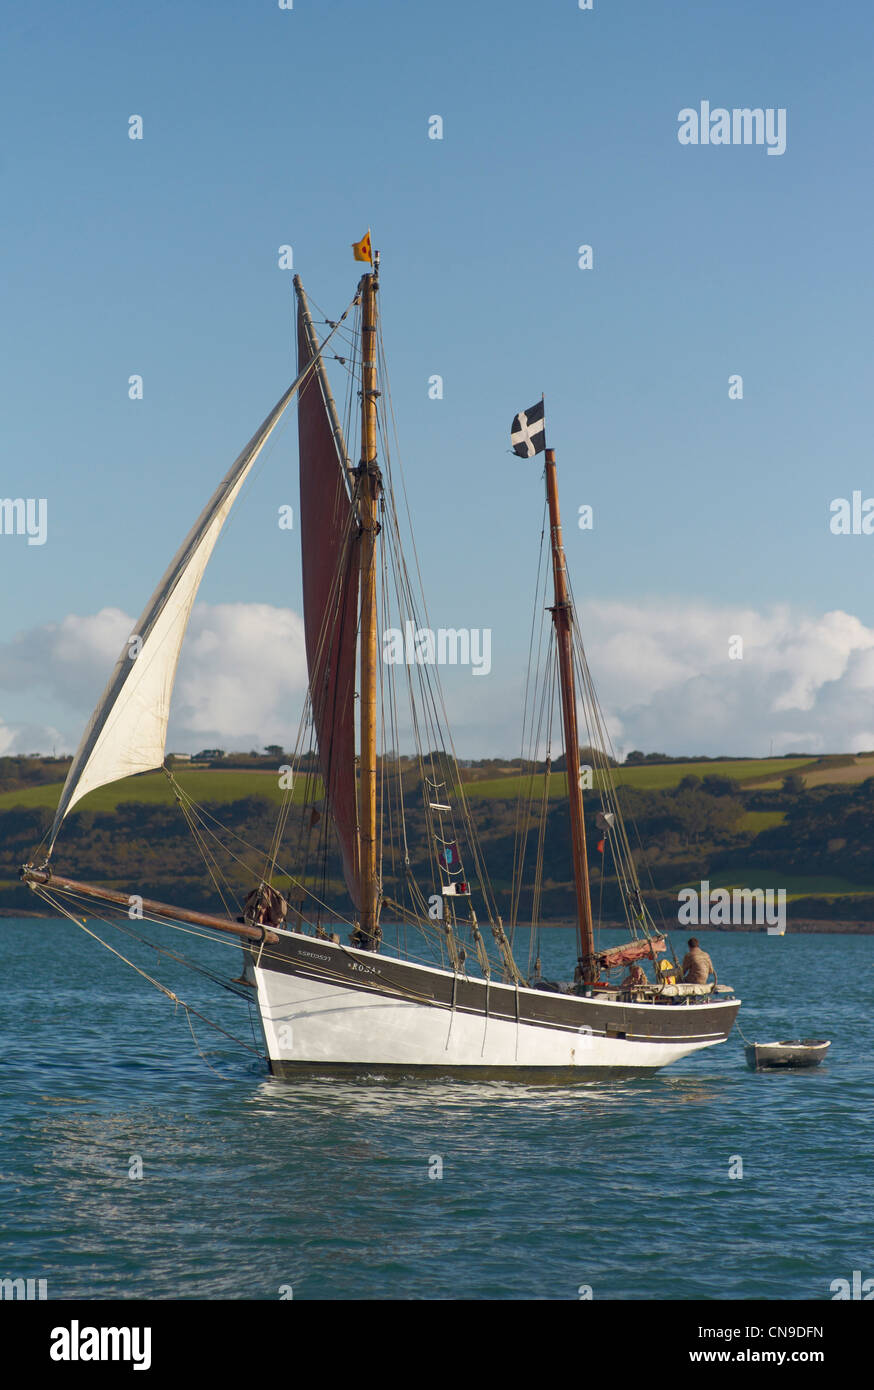 Traditional Woodend two masted sail boat on the Fal Estuary Cornwall England - Stock Image